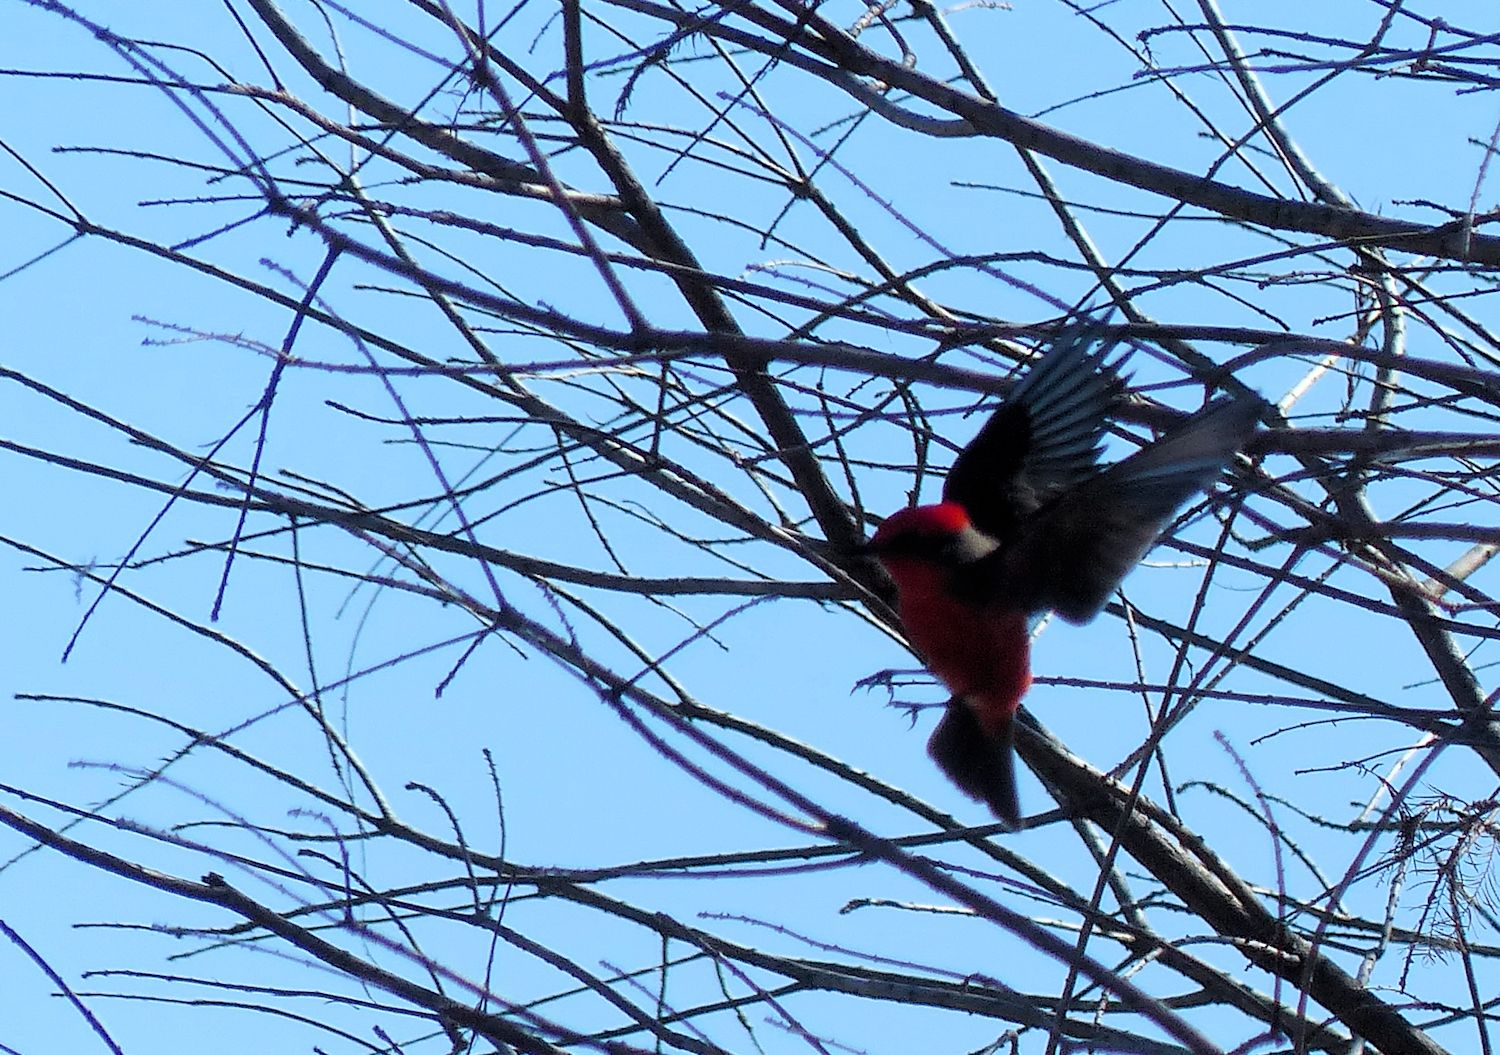 Vermillion Flycatcher catching flies